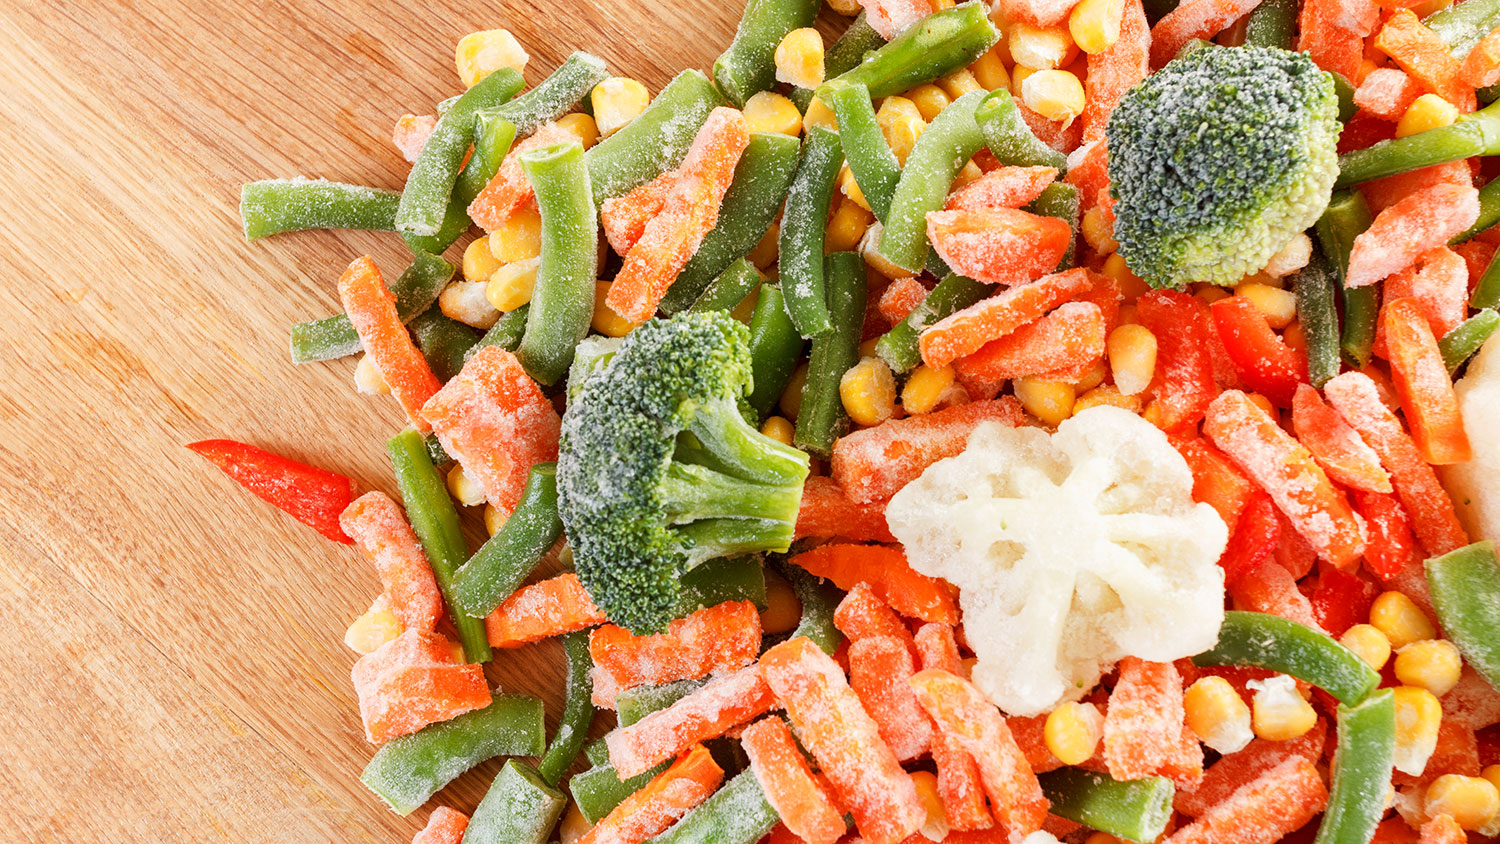 frozen vs non frozen vegetables